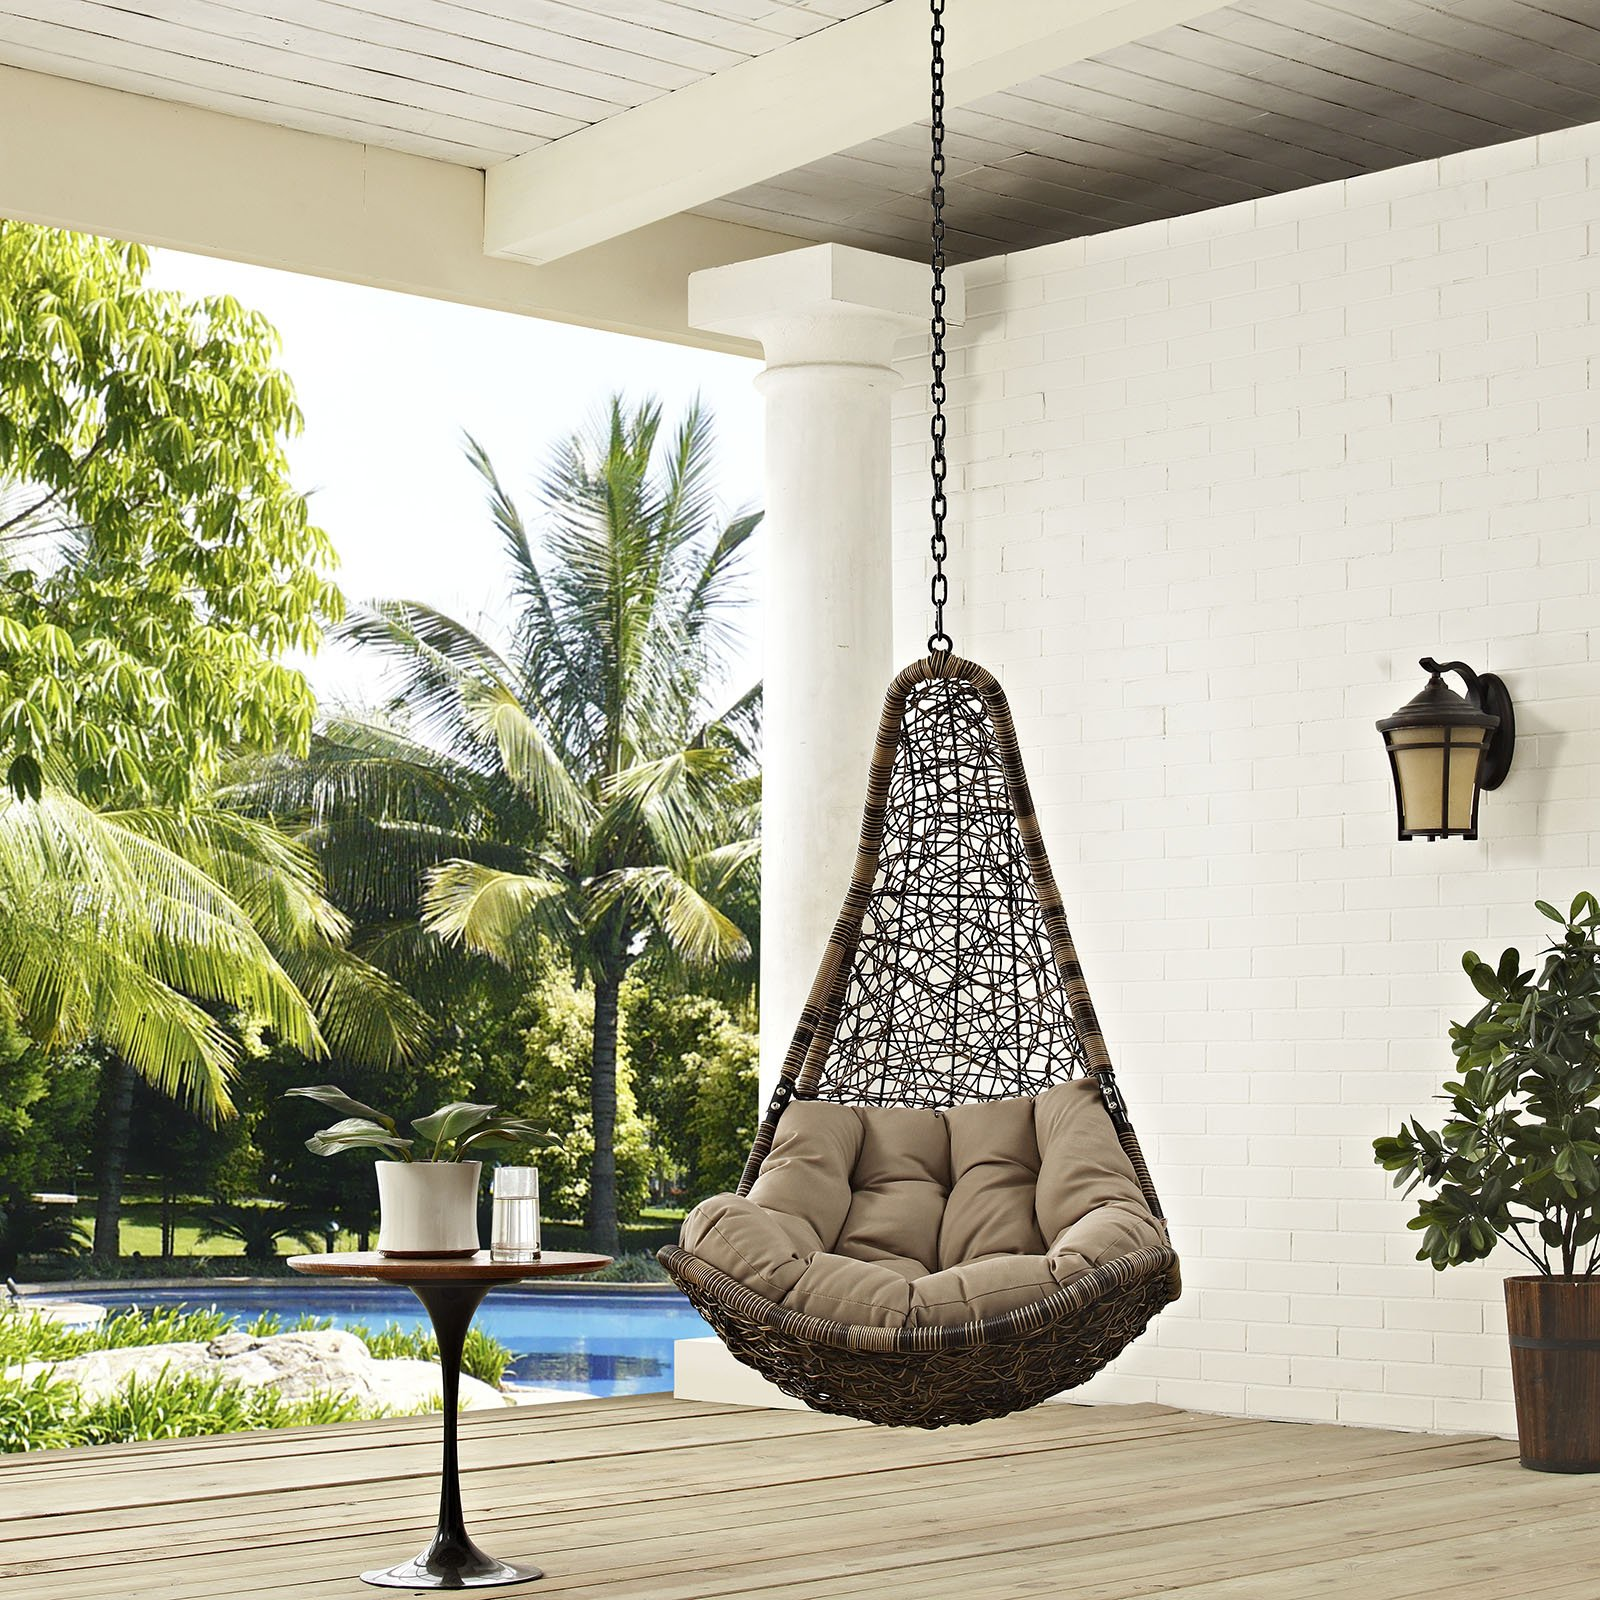 Modway EEI-2657-BLK-MOC-SET Abate Wicker Rattan Outdoor Patio Balcony Porch Lounge Swing Chair Set with Hanging Steel Chain Black Mocha by Modway